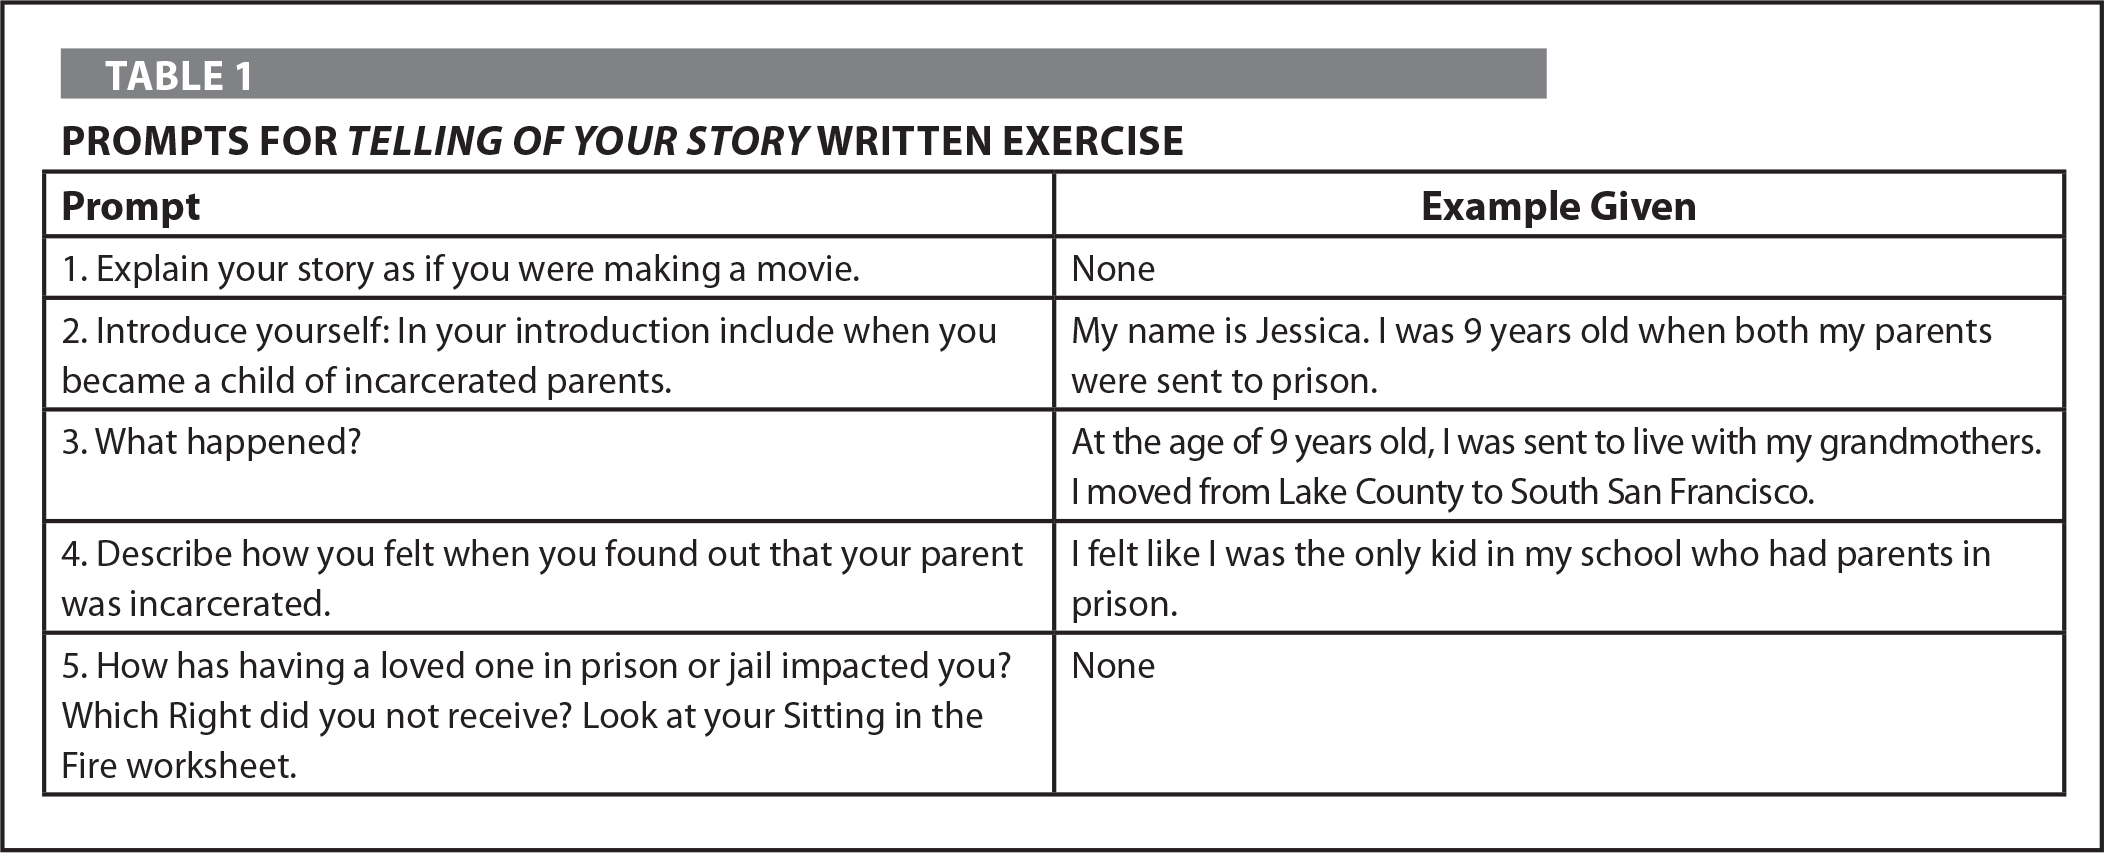 Prompts for Telling of Your Story Written Exercise